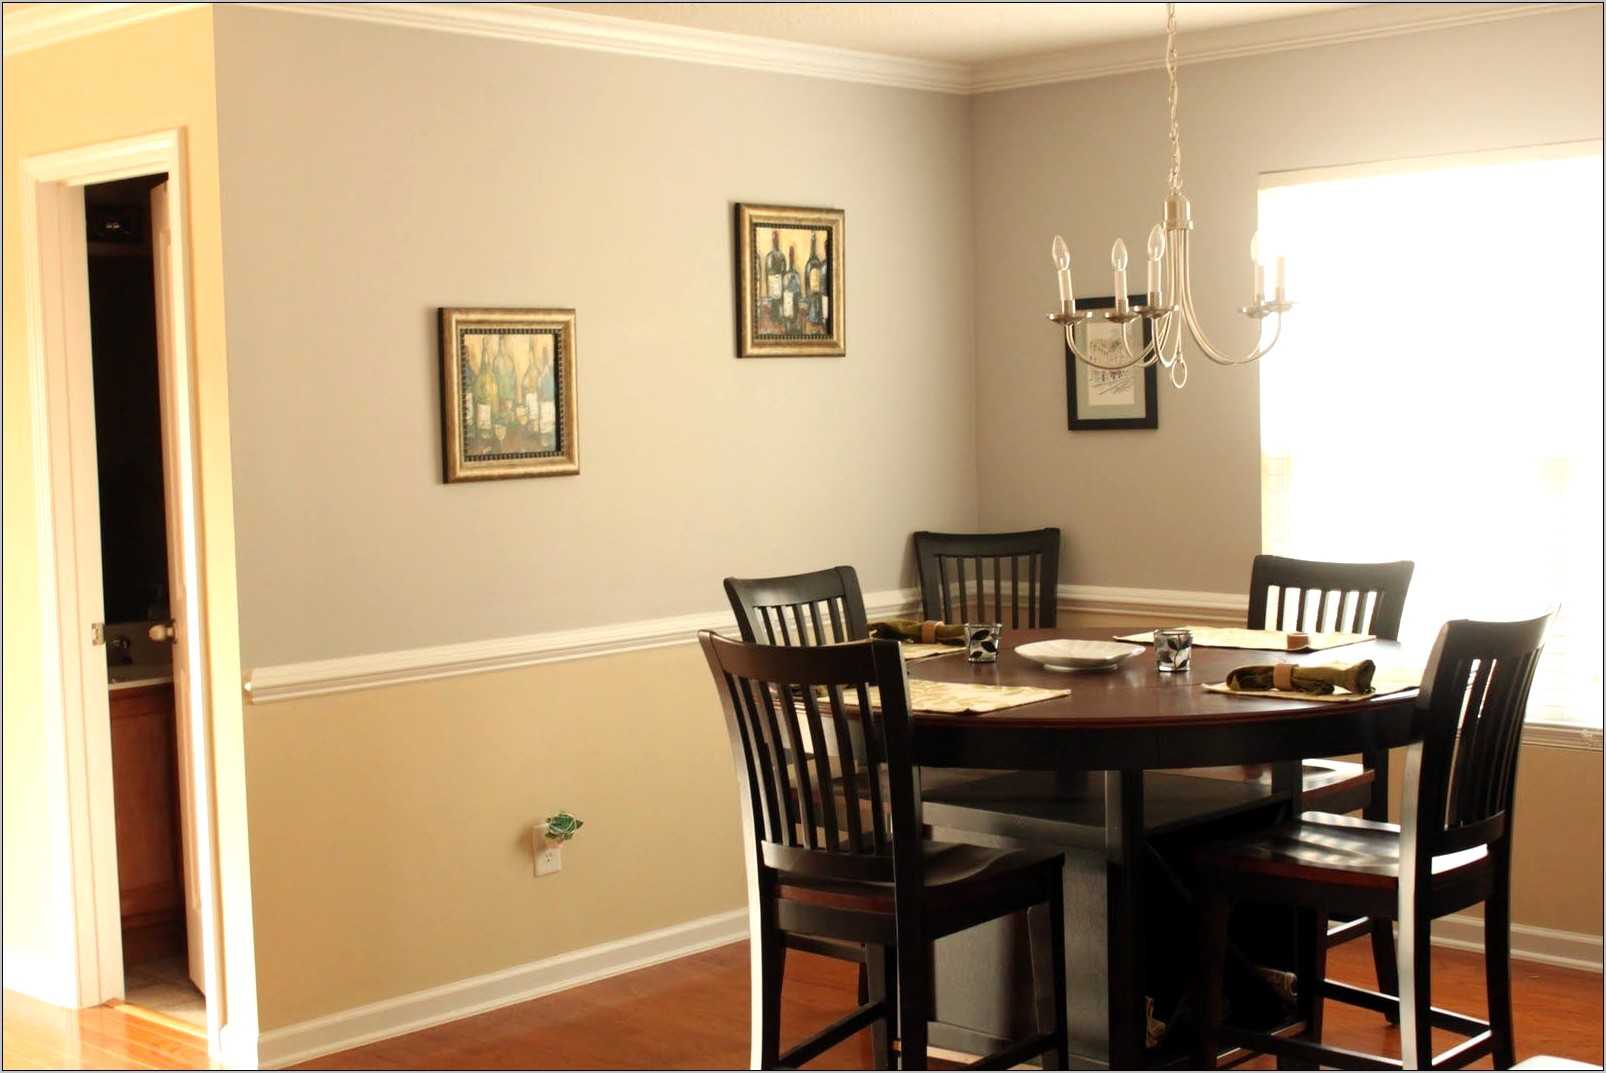 Dining Room Decor With Chair Rail